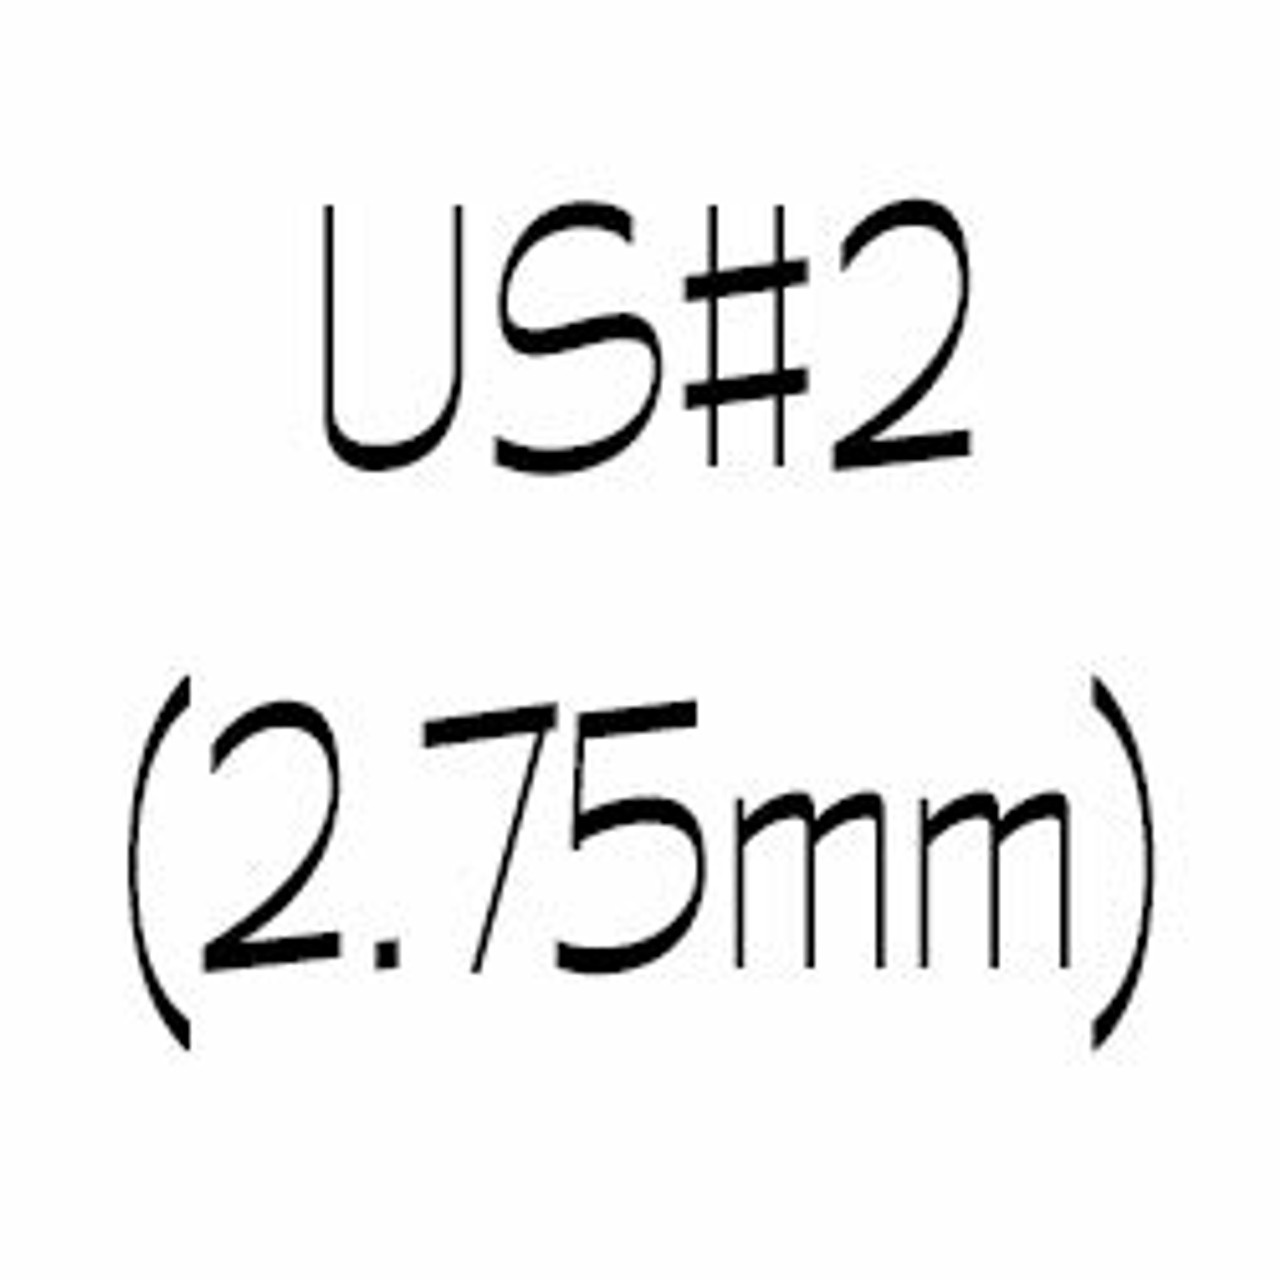 US#2 (2.75mm) Double Point Knitting Needles